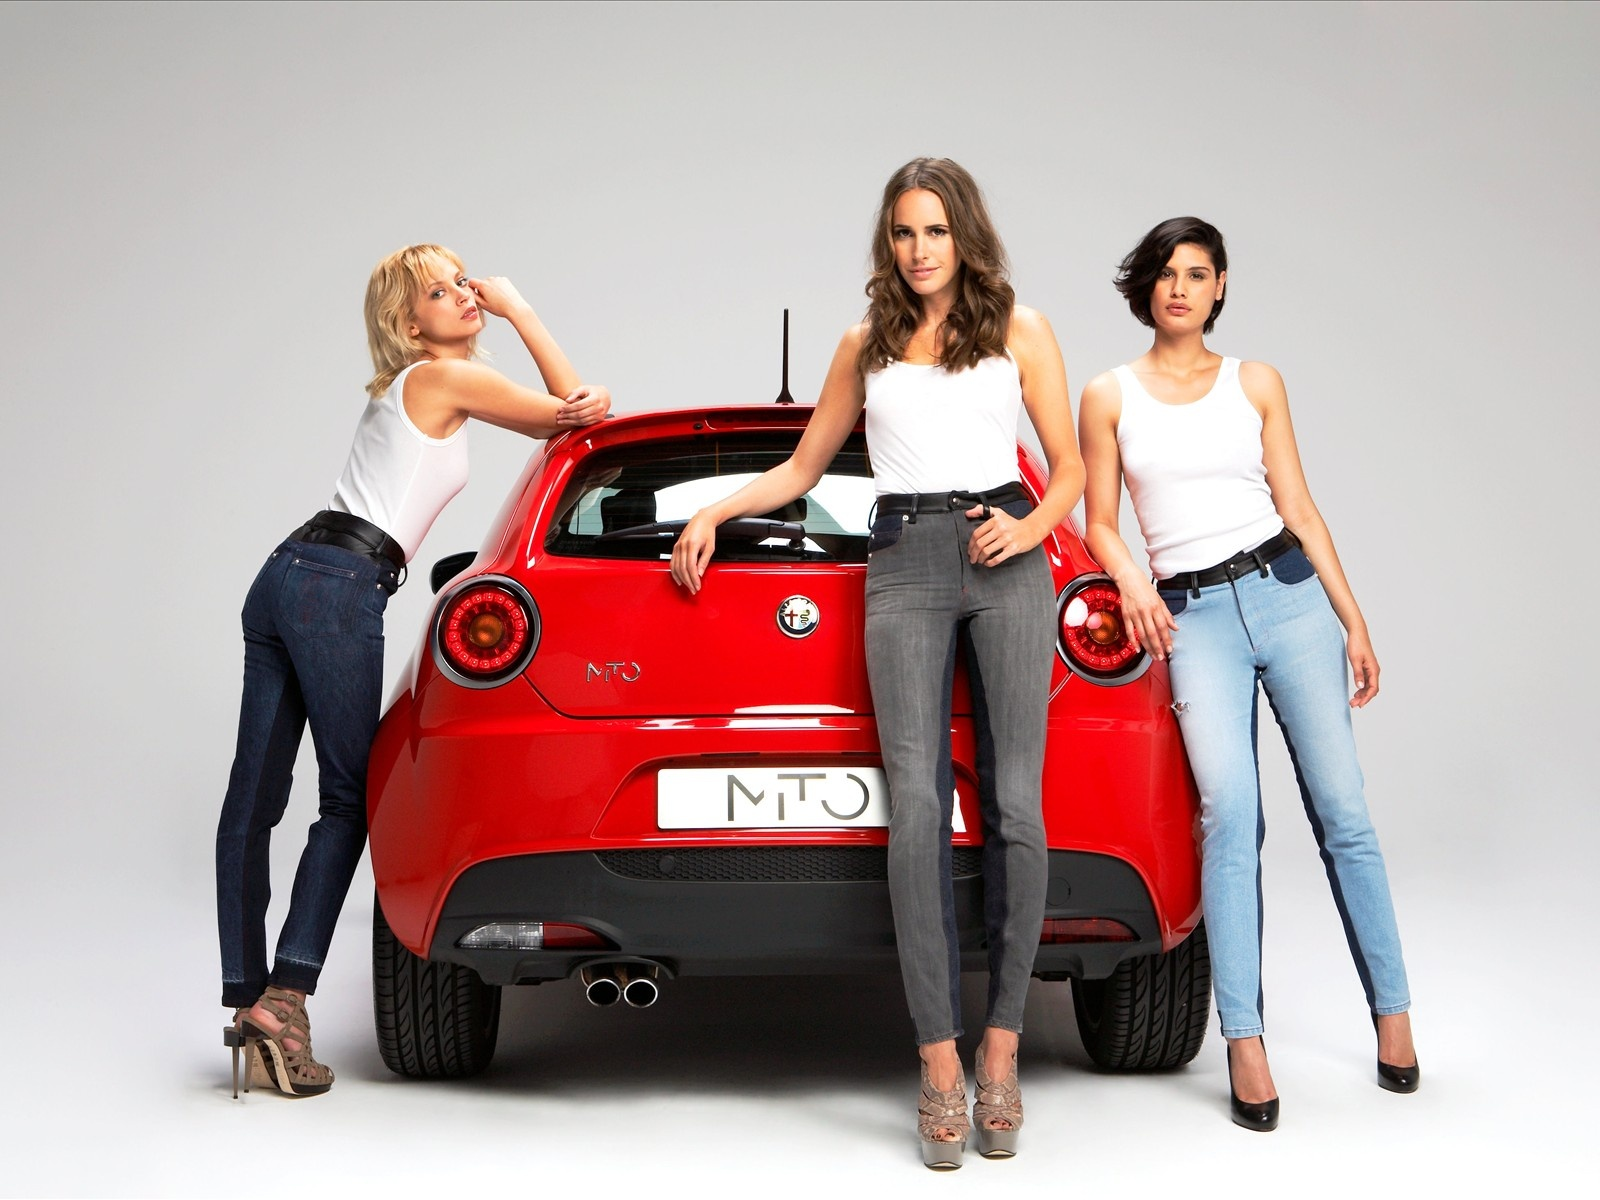 Alfa Romeo Mito And Long Legged Girls Models In Jeans Commercial Photo Wallpaper -9530